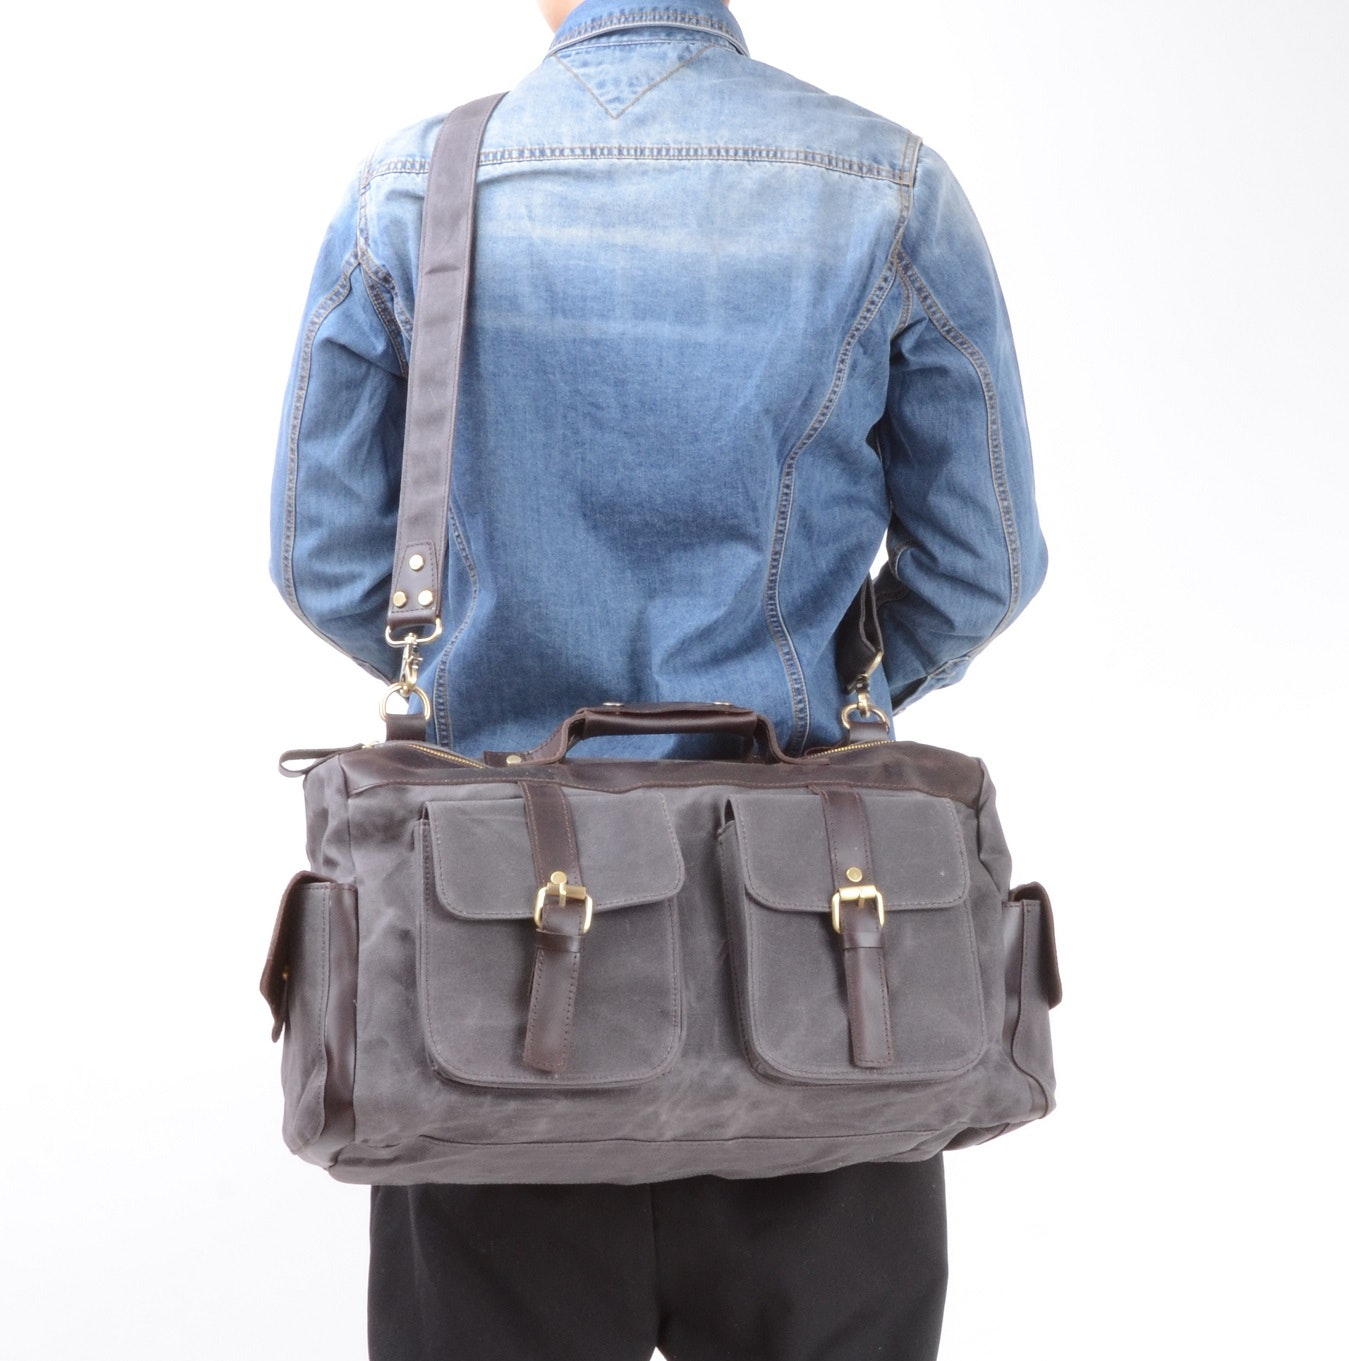 d53b3e1782e Waxed Canvas Double Front Pockets Weekend Travel Bag in Grey by Eazo - Fy